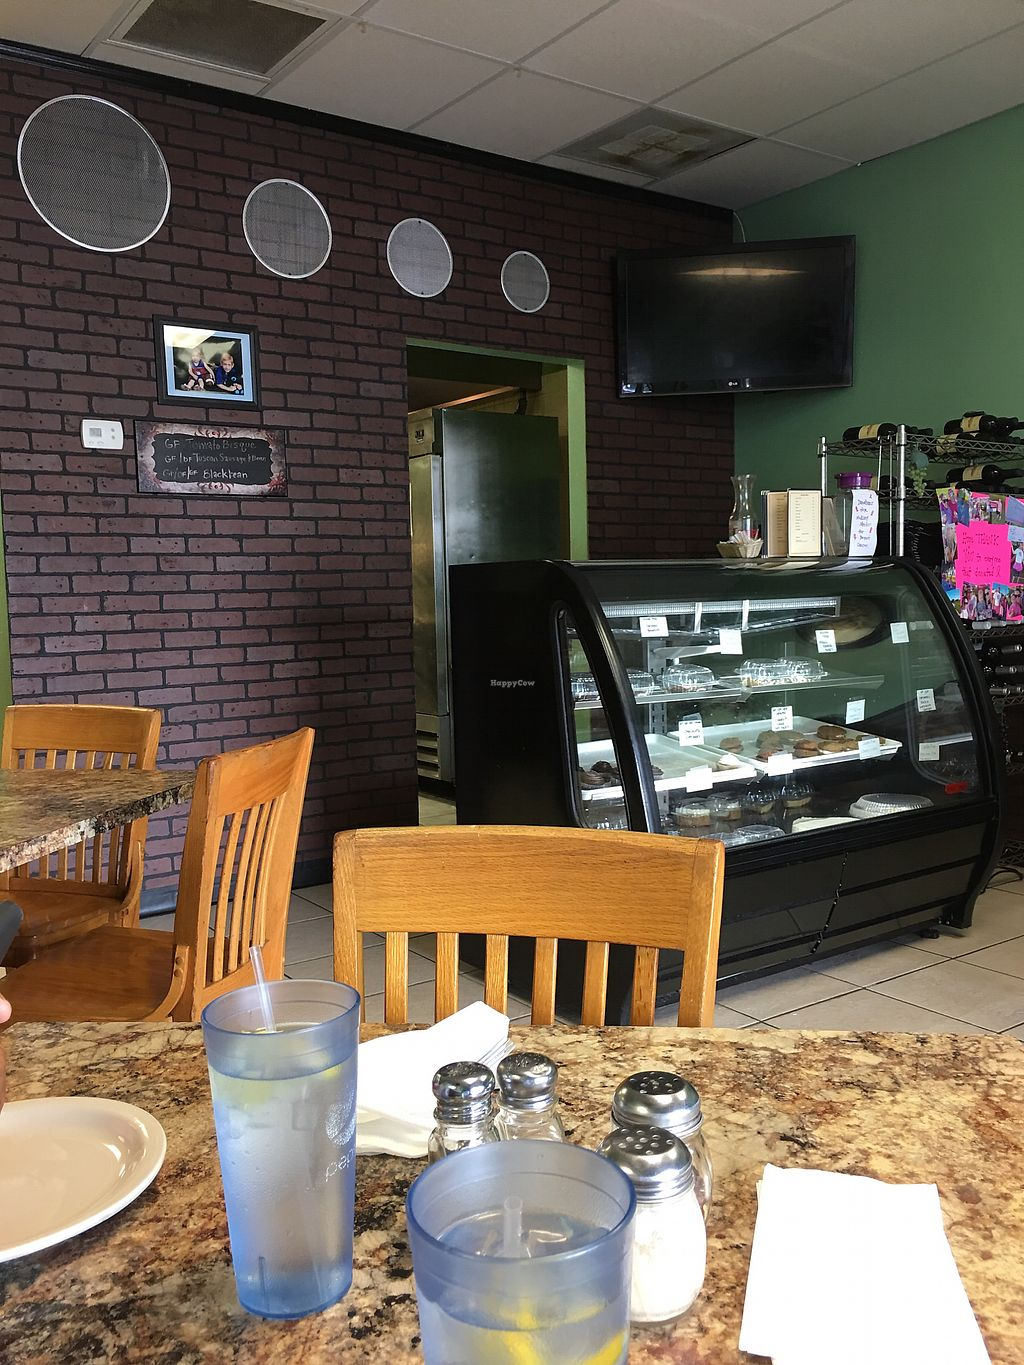 """Photo of Vertoris Pizza House  by <a href=""""/members/profile/VivecaChasteenPark"""">VivecaChasteenPark</a> <br/>From our table <br/> September 3, 2017  - <a href='/contact/abuse/image/29169/300654'>Report</a>"""